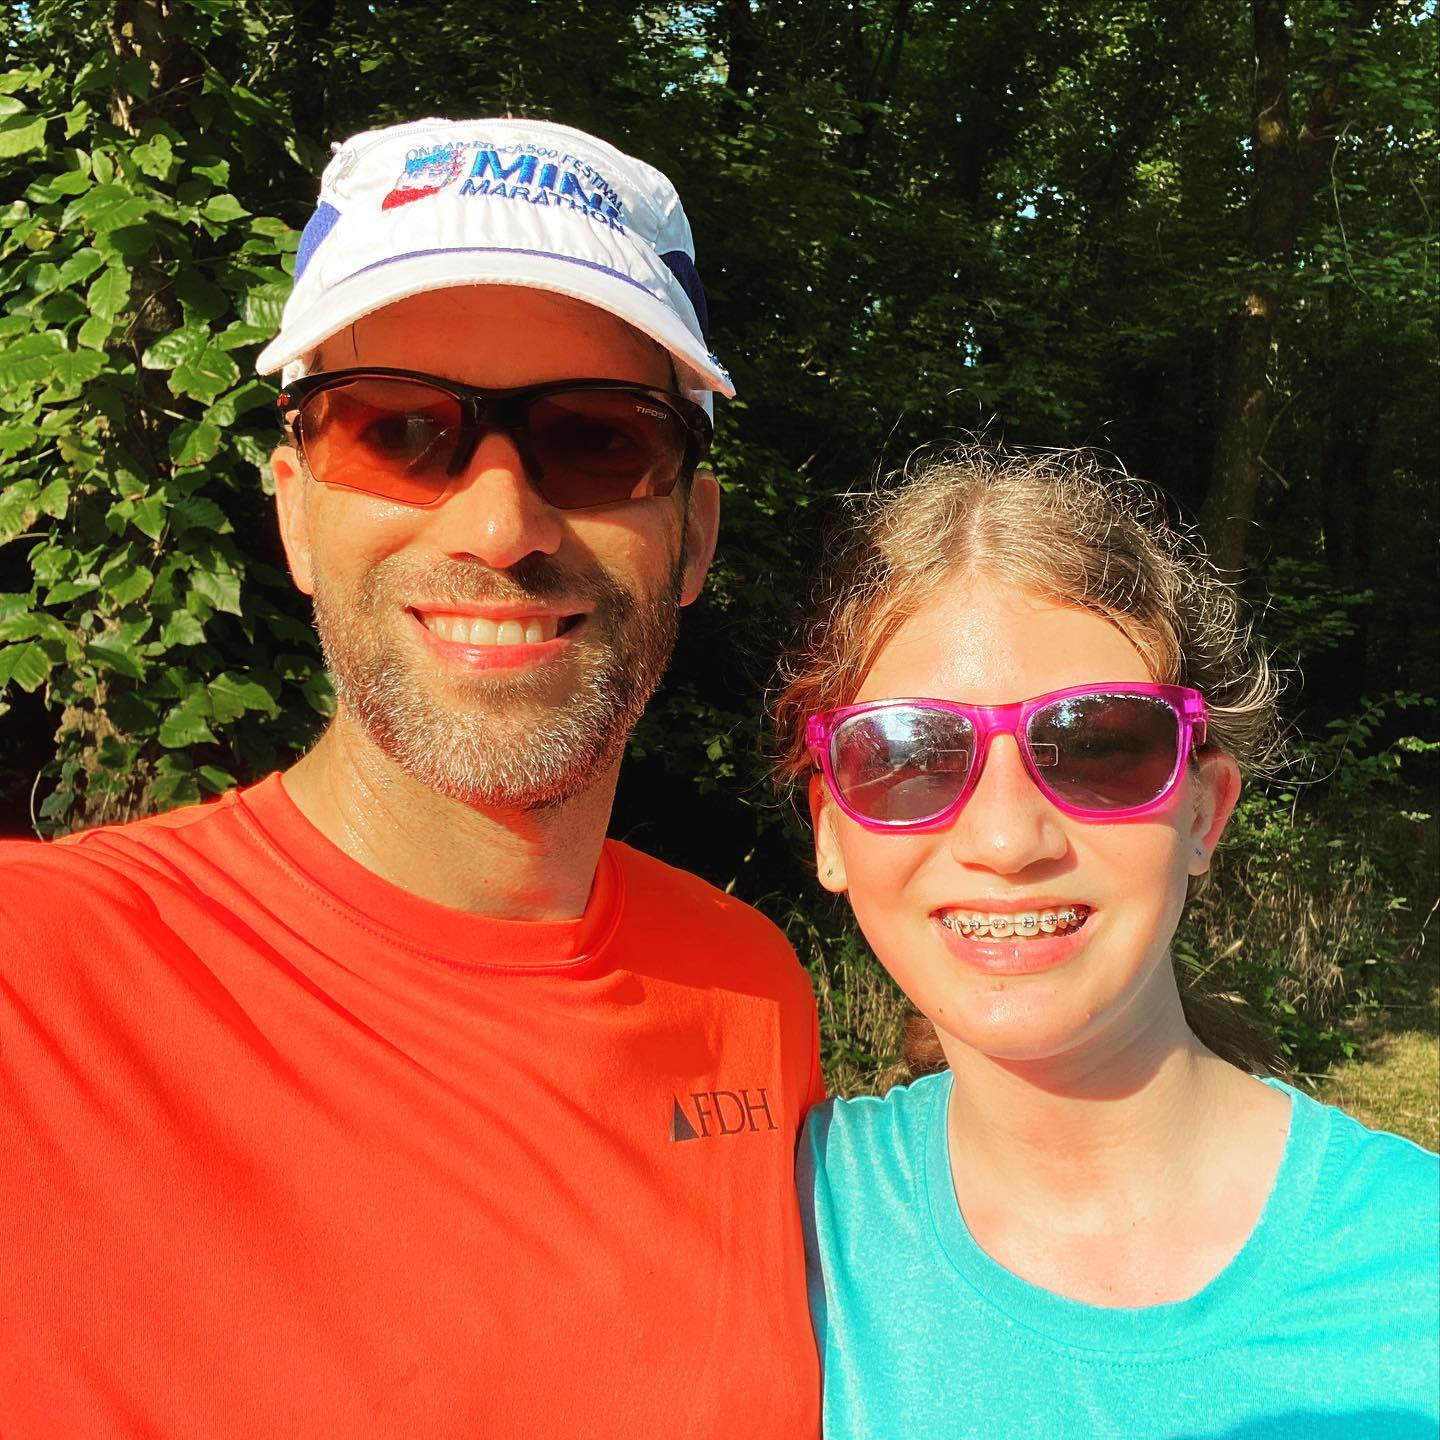 When Sara started training for cross country at the beginning of summer she had absolutely no running base and today she just ran 5K (3.1 miles) with no walk breaks for the first time. So proud of how hard she has been working and it has been a lot of fun running with her as she steadily progresses. #family #running